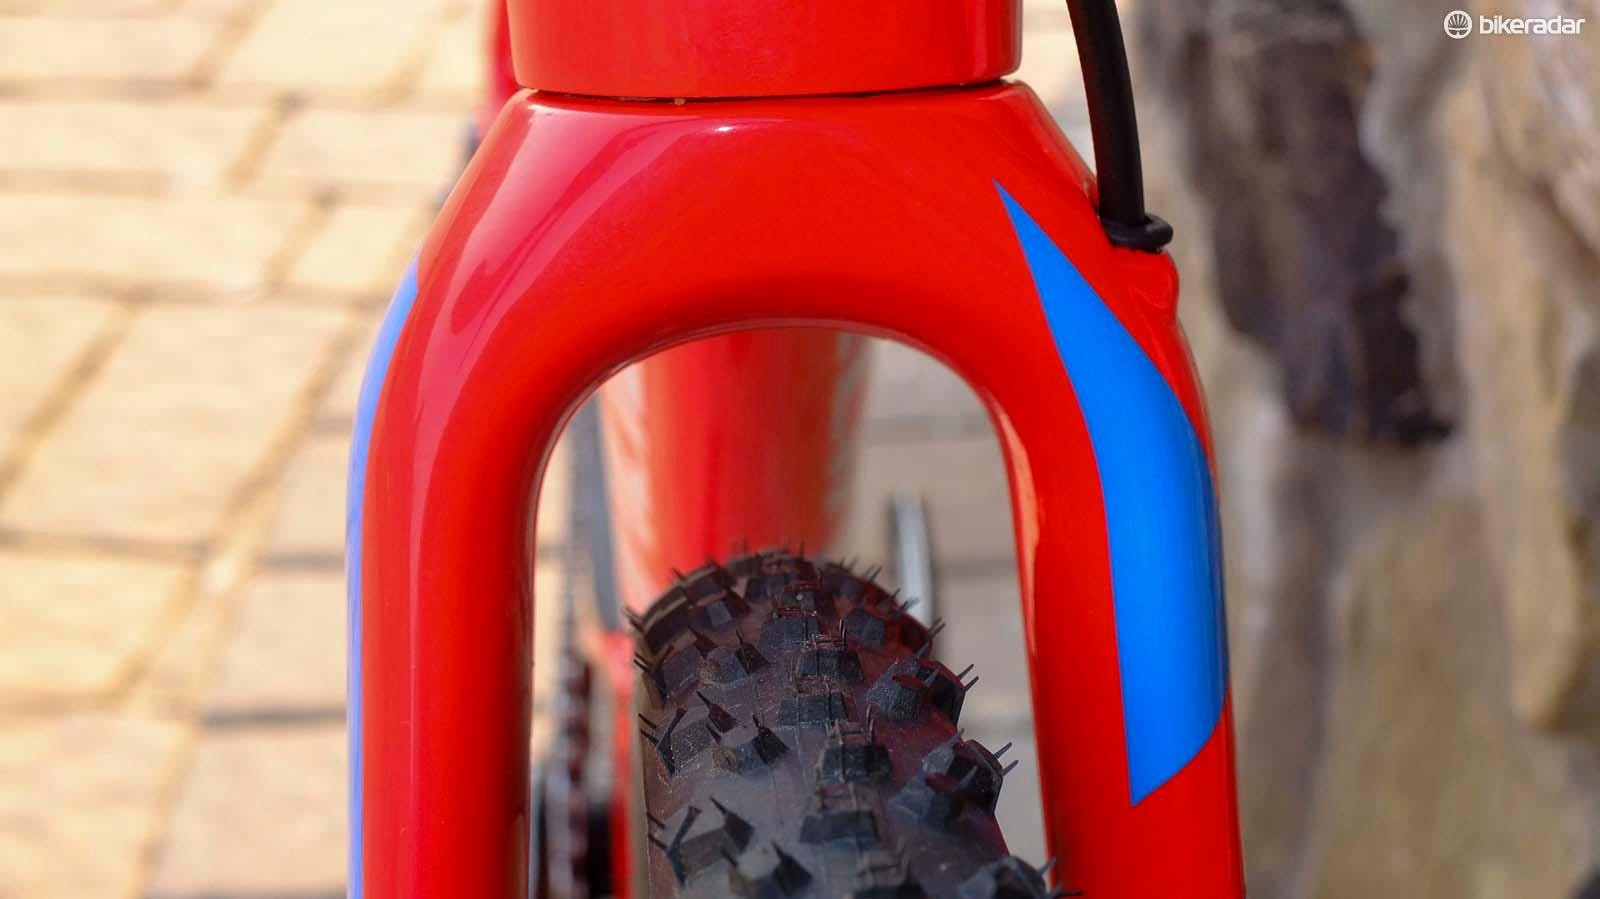 No lack of tyre clearance with 33mm CX rubber fitted